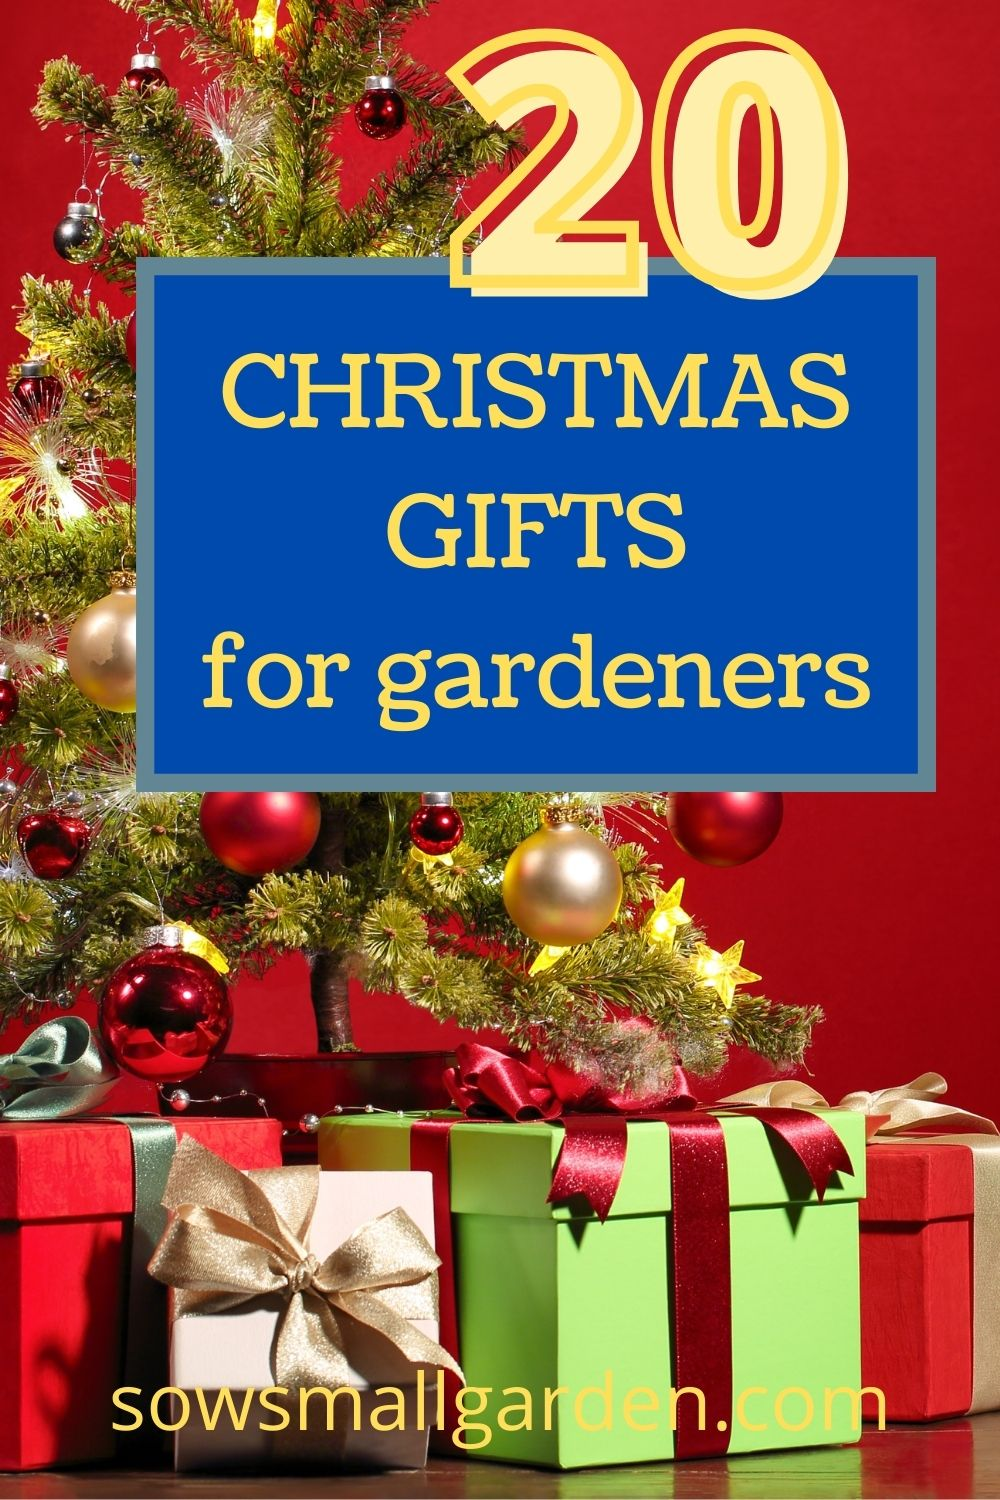 20 great Christmas gift ideas for gardeners